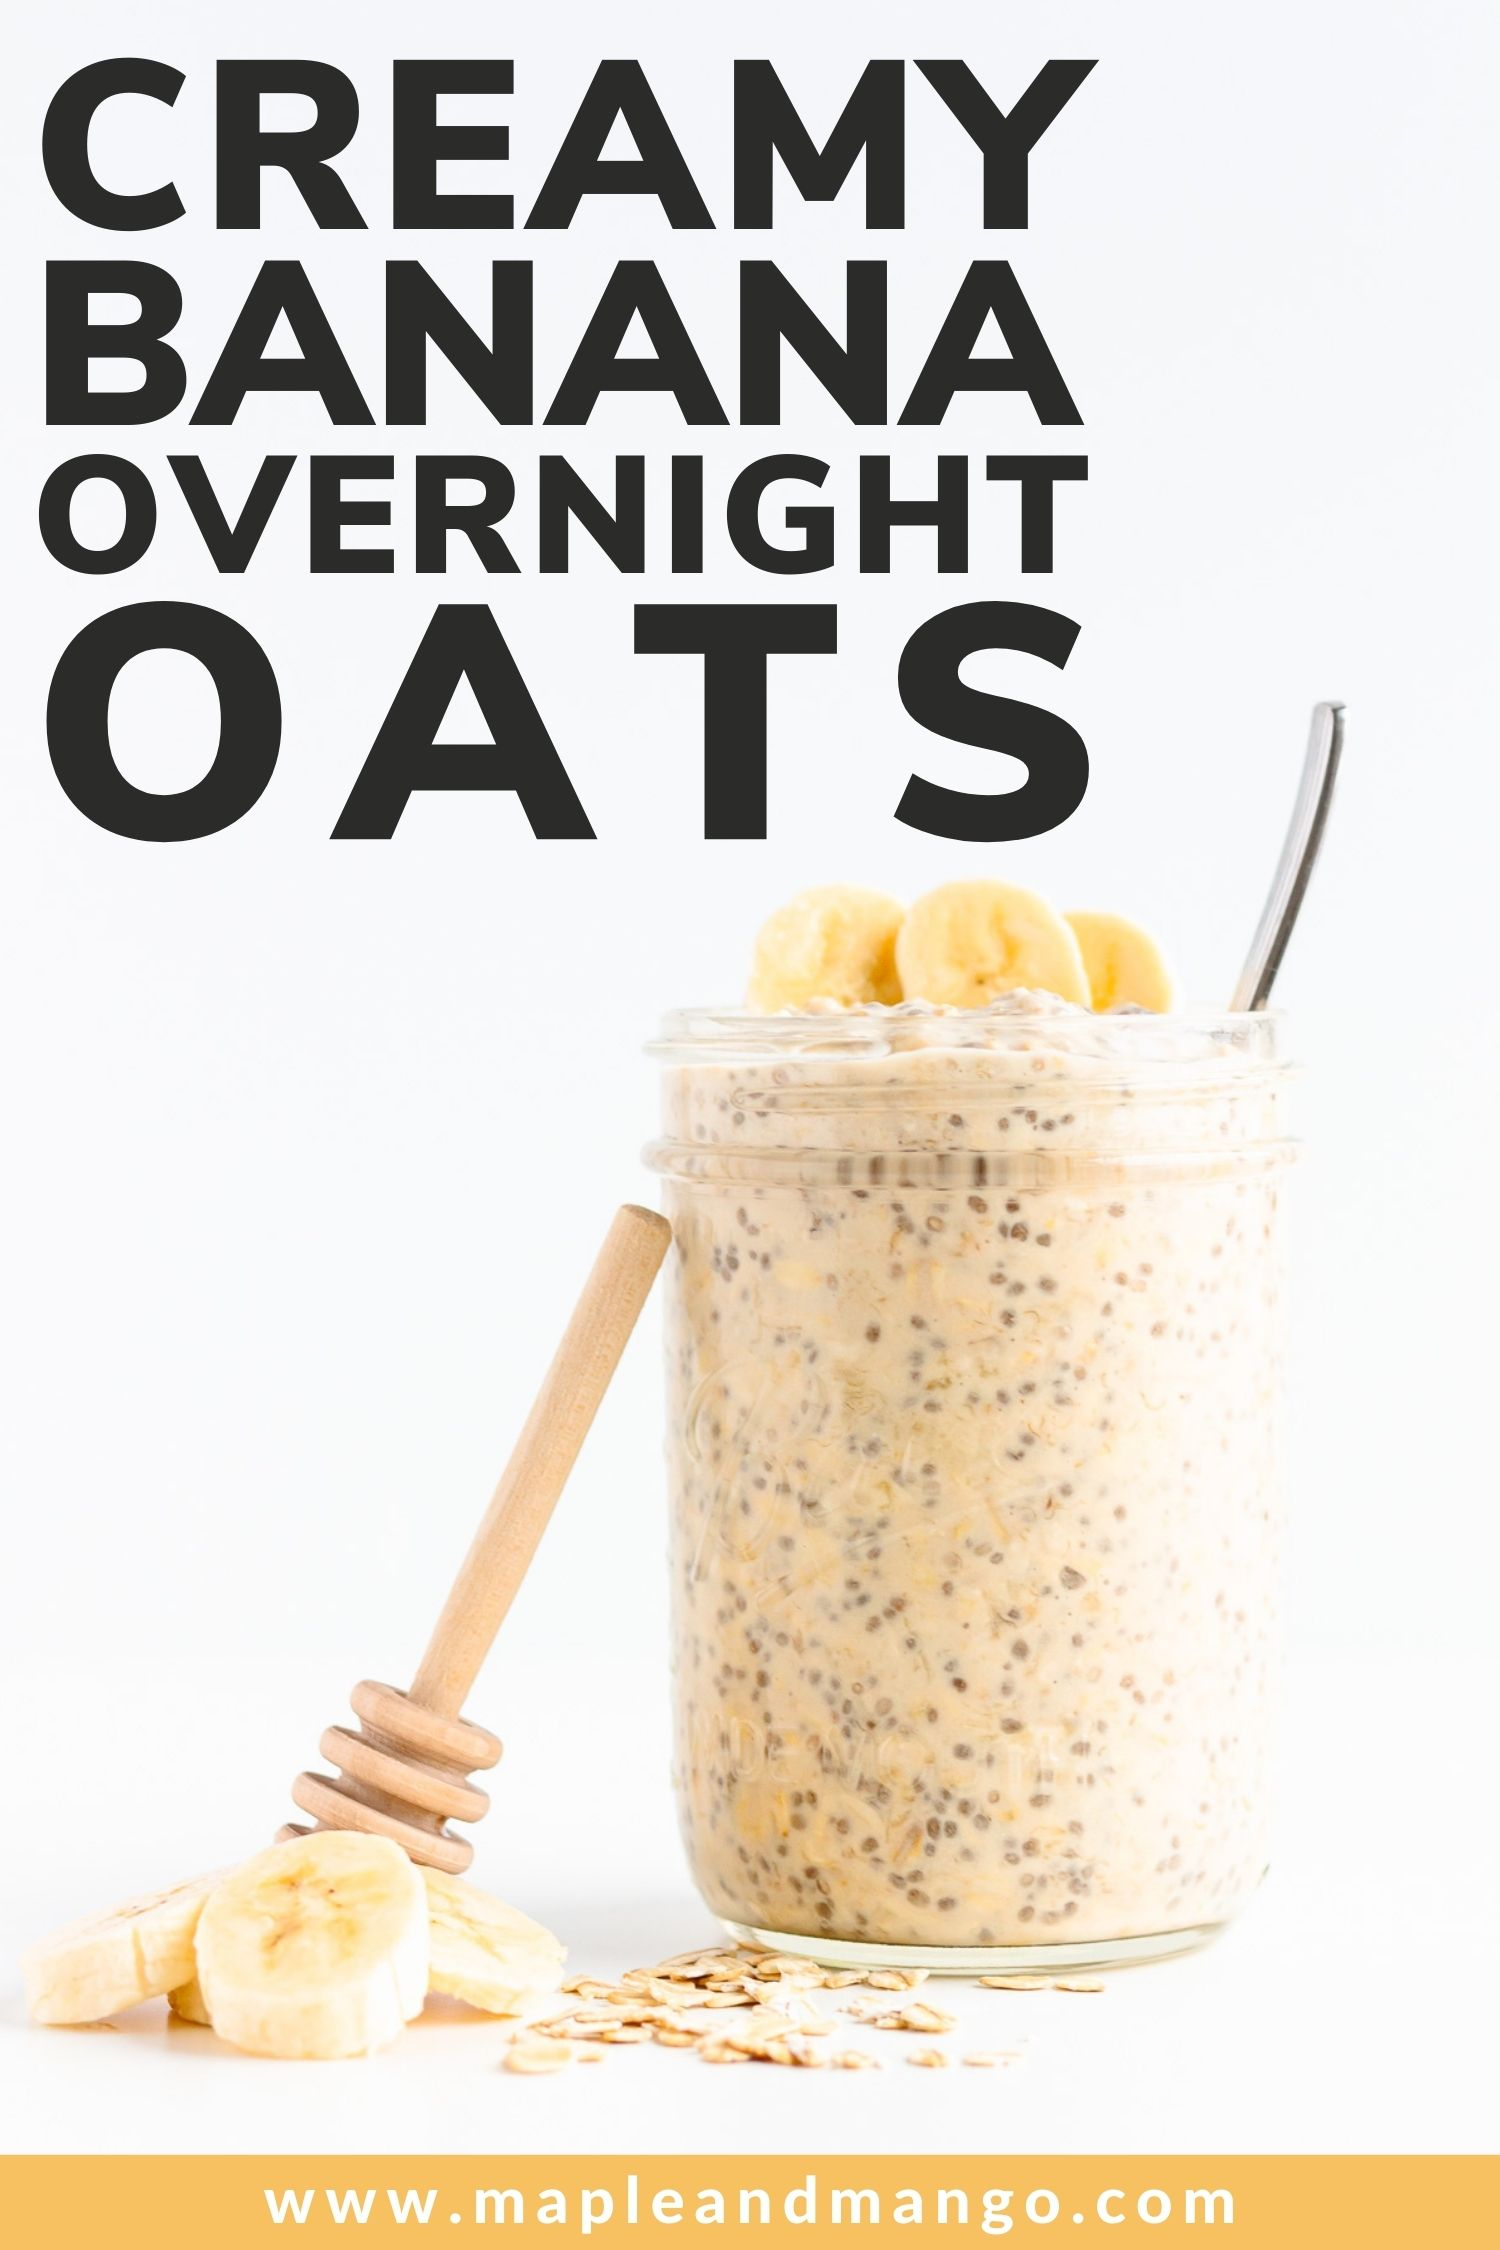 """Jar of overnight oats with honey dipper, banana slices and oats next to it and text overlay """"Creamy Banana Overnight Oats"""""""